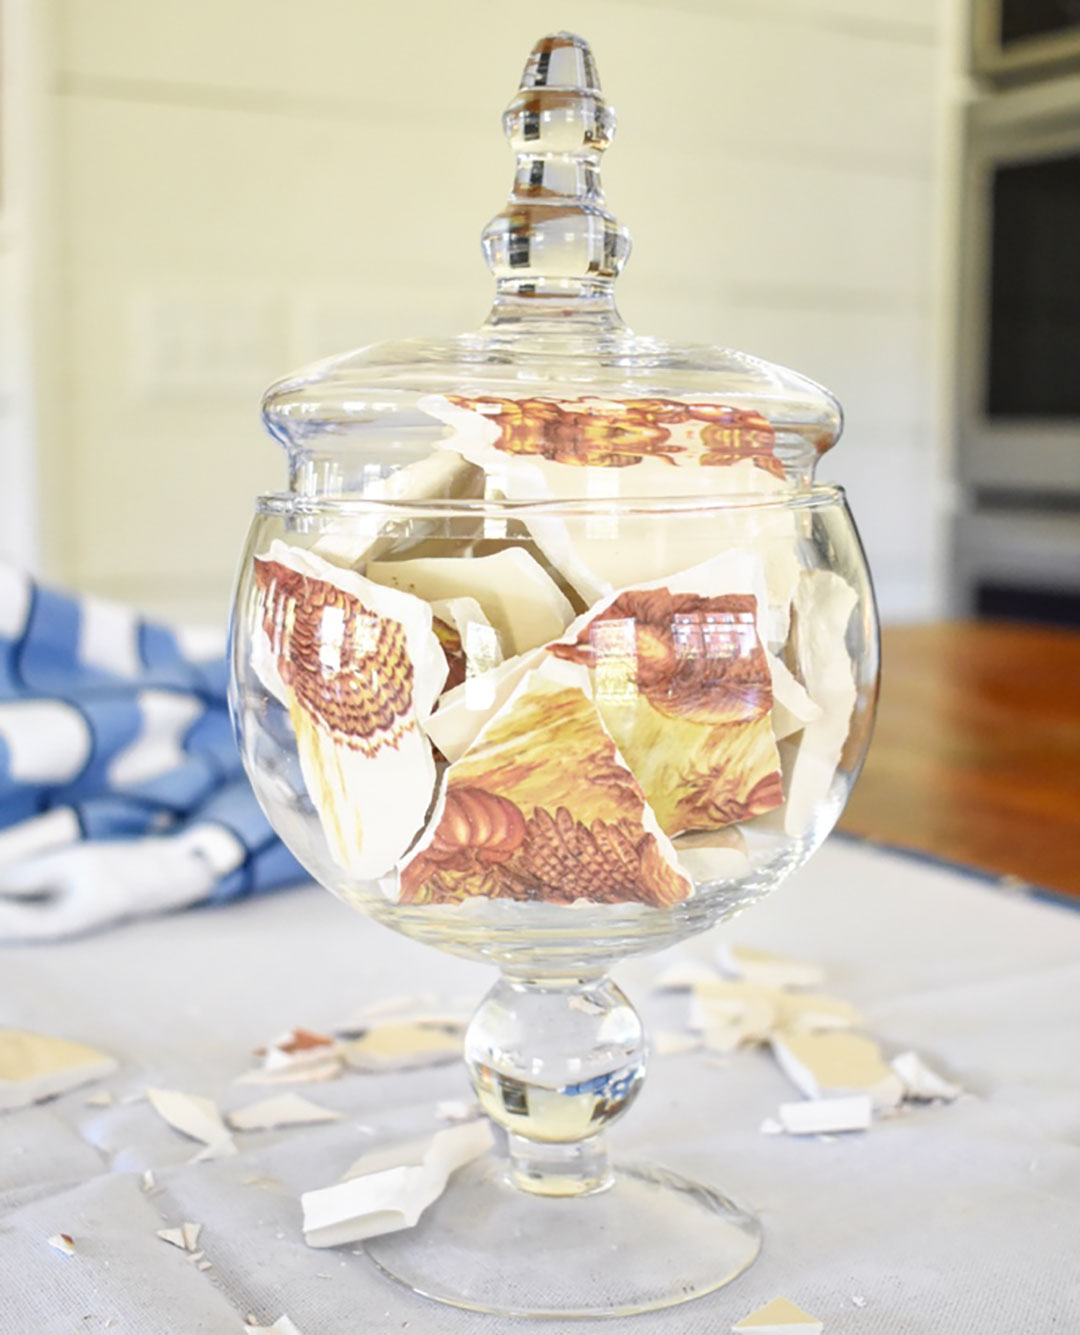 How To Use Thrift Store Plates To Create A Simple Apothecary Jar Craft 9 Cottage Style Decorating Renovating And Entertaining Ideas For Indoors And Out